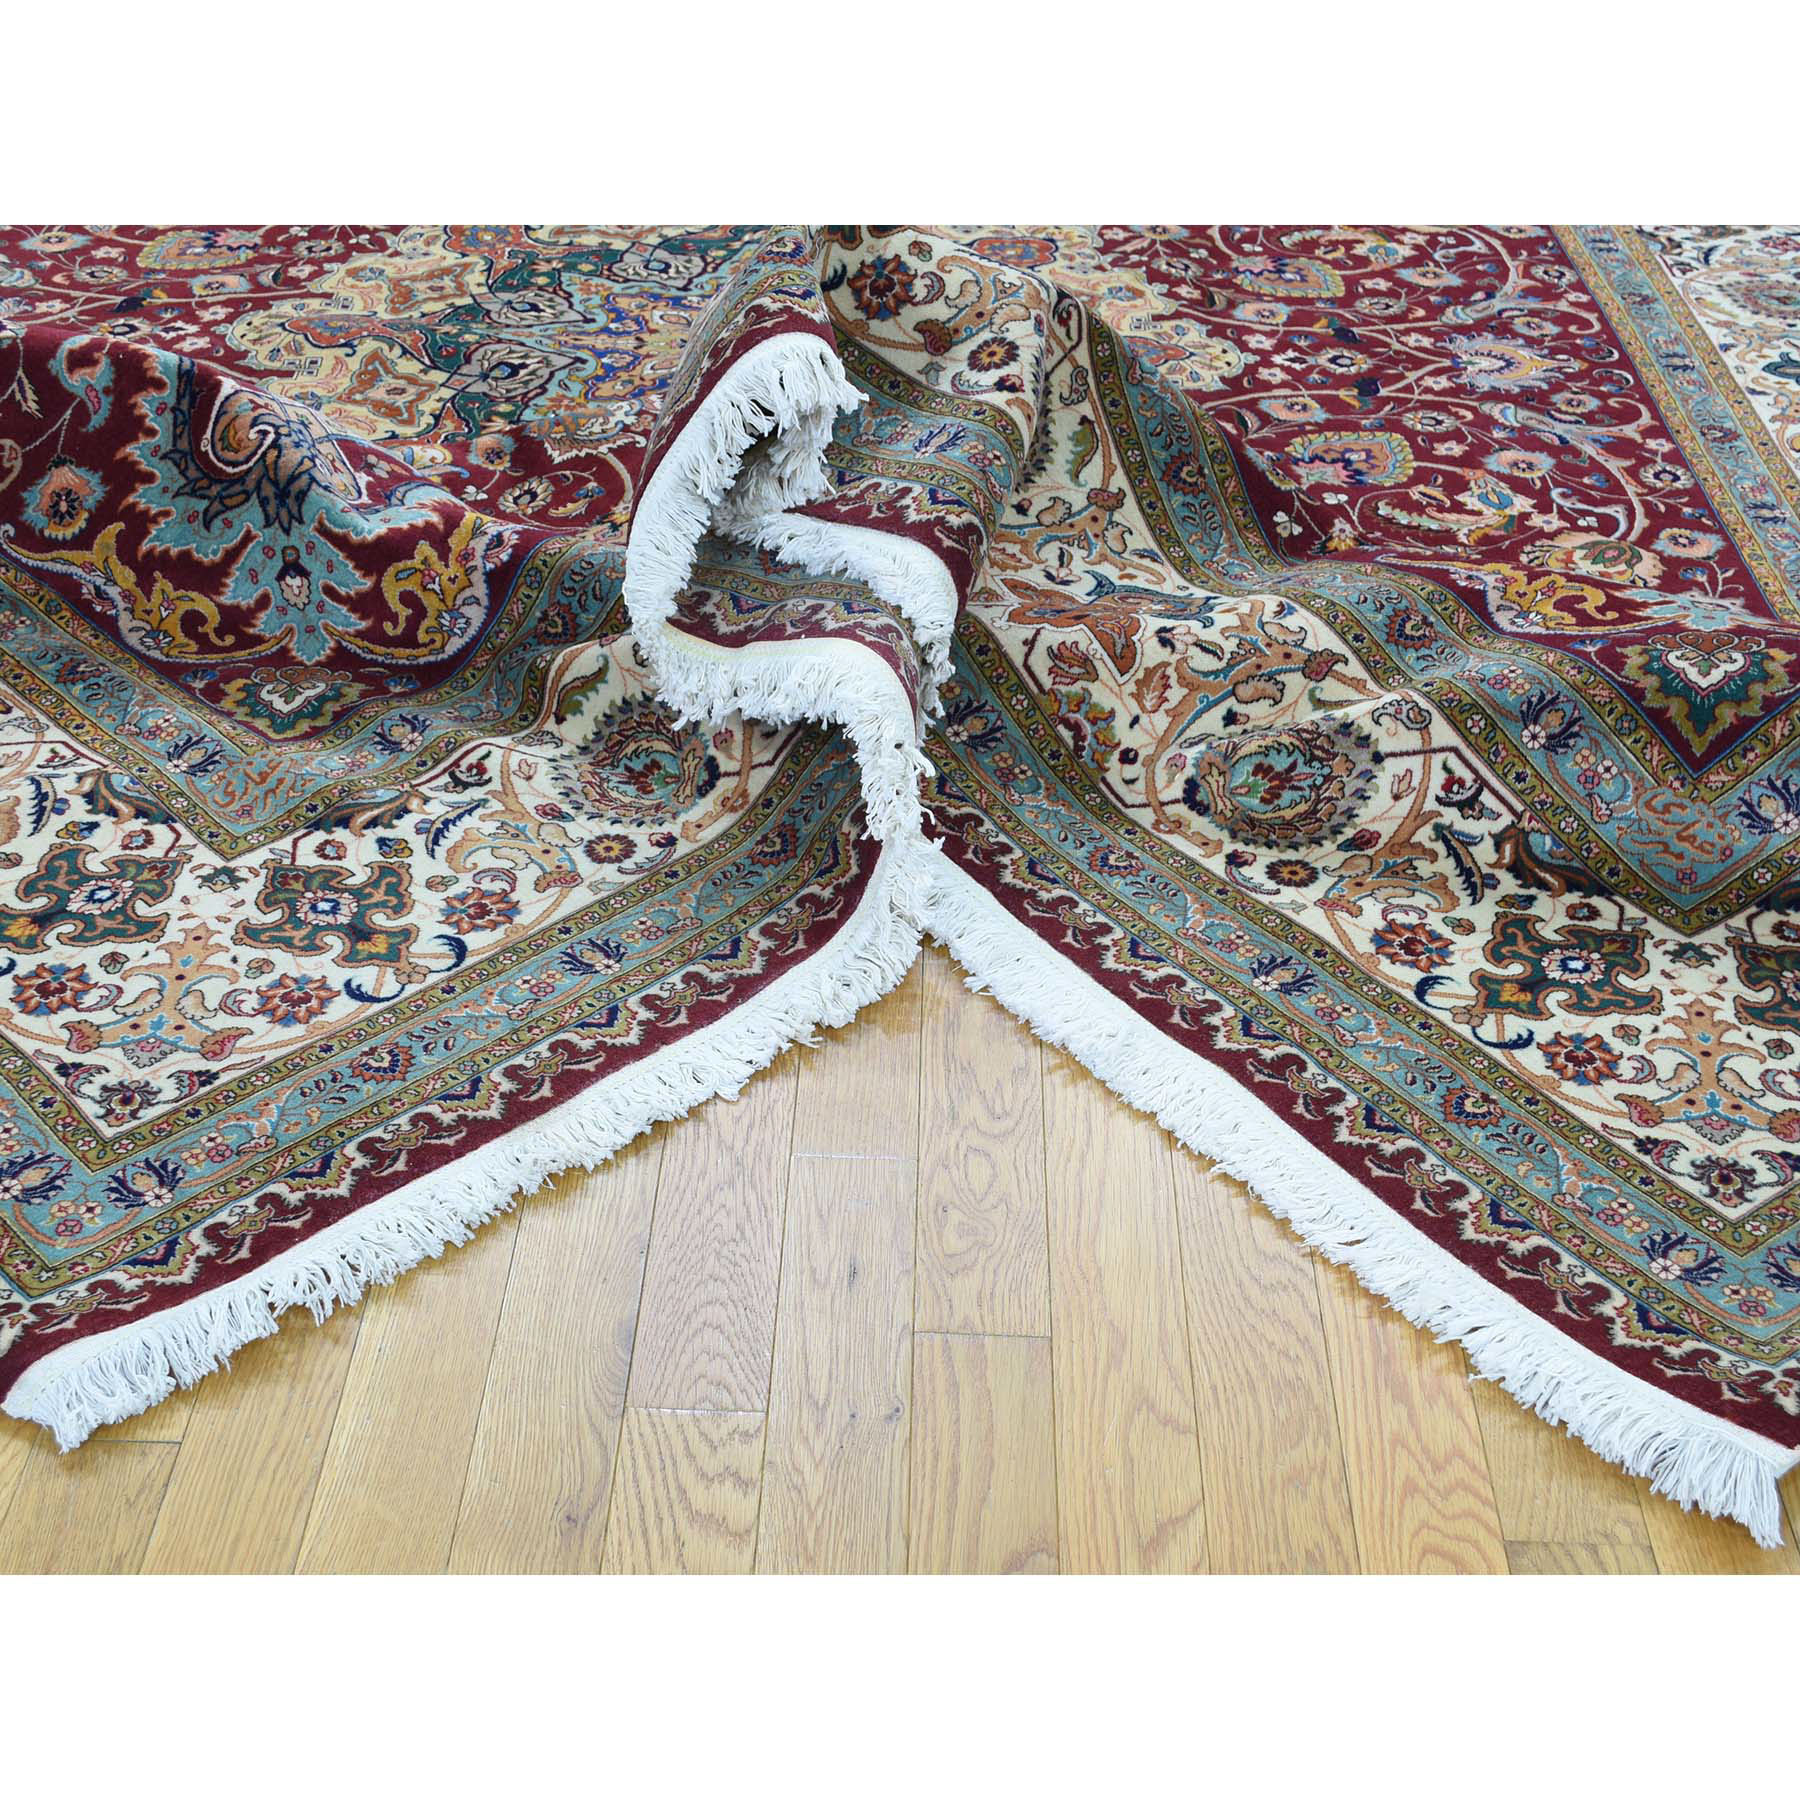 9-9 x12-8  Persian Tabriz 400 Kpsi Wool and Silk Handmade Oriental Rug